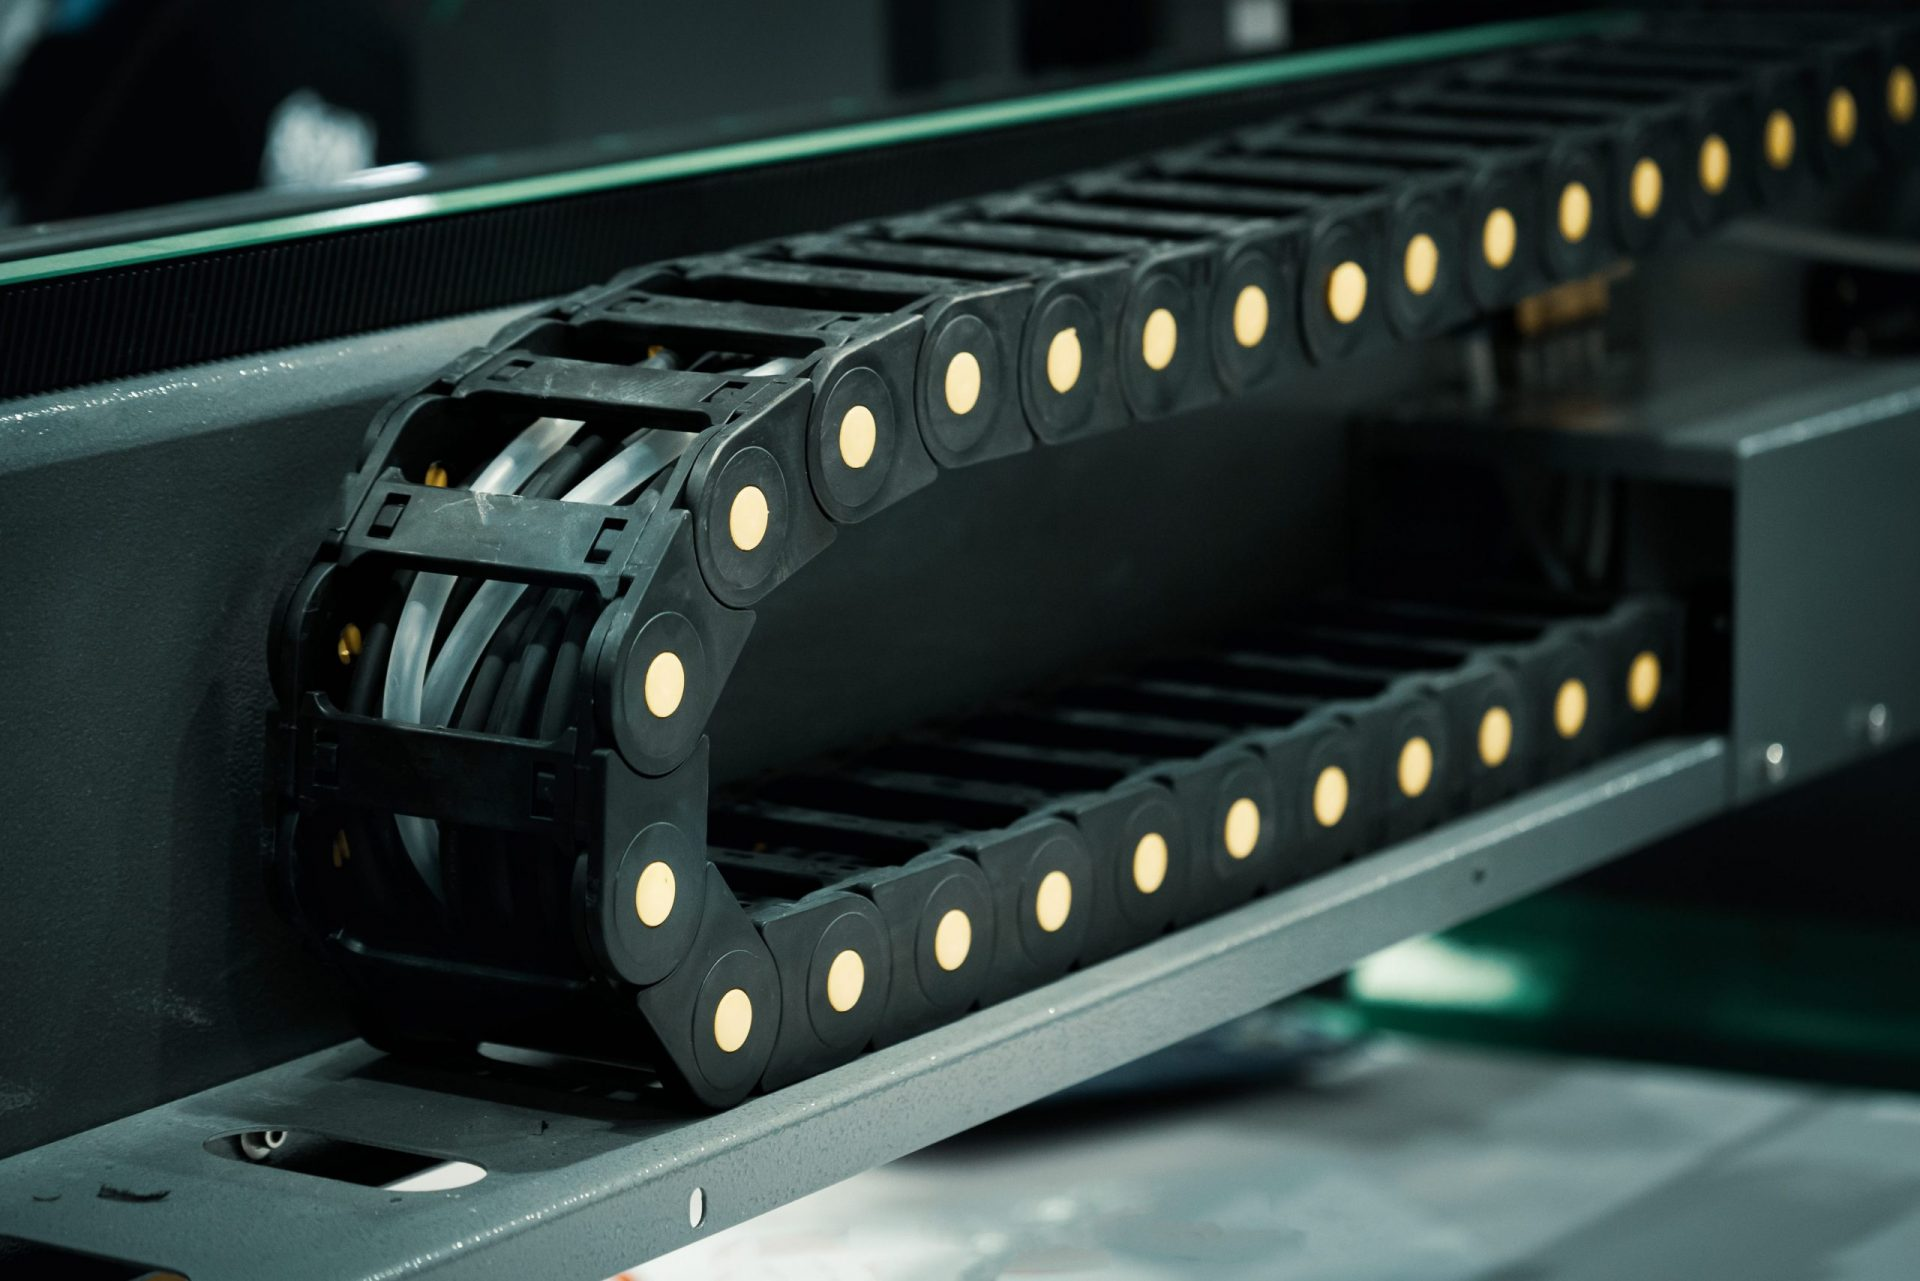 Chain,Carrier,Cable,For,Inkjet,Machine.